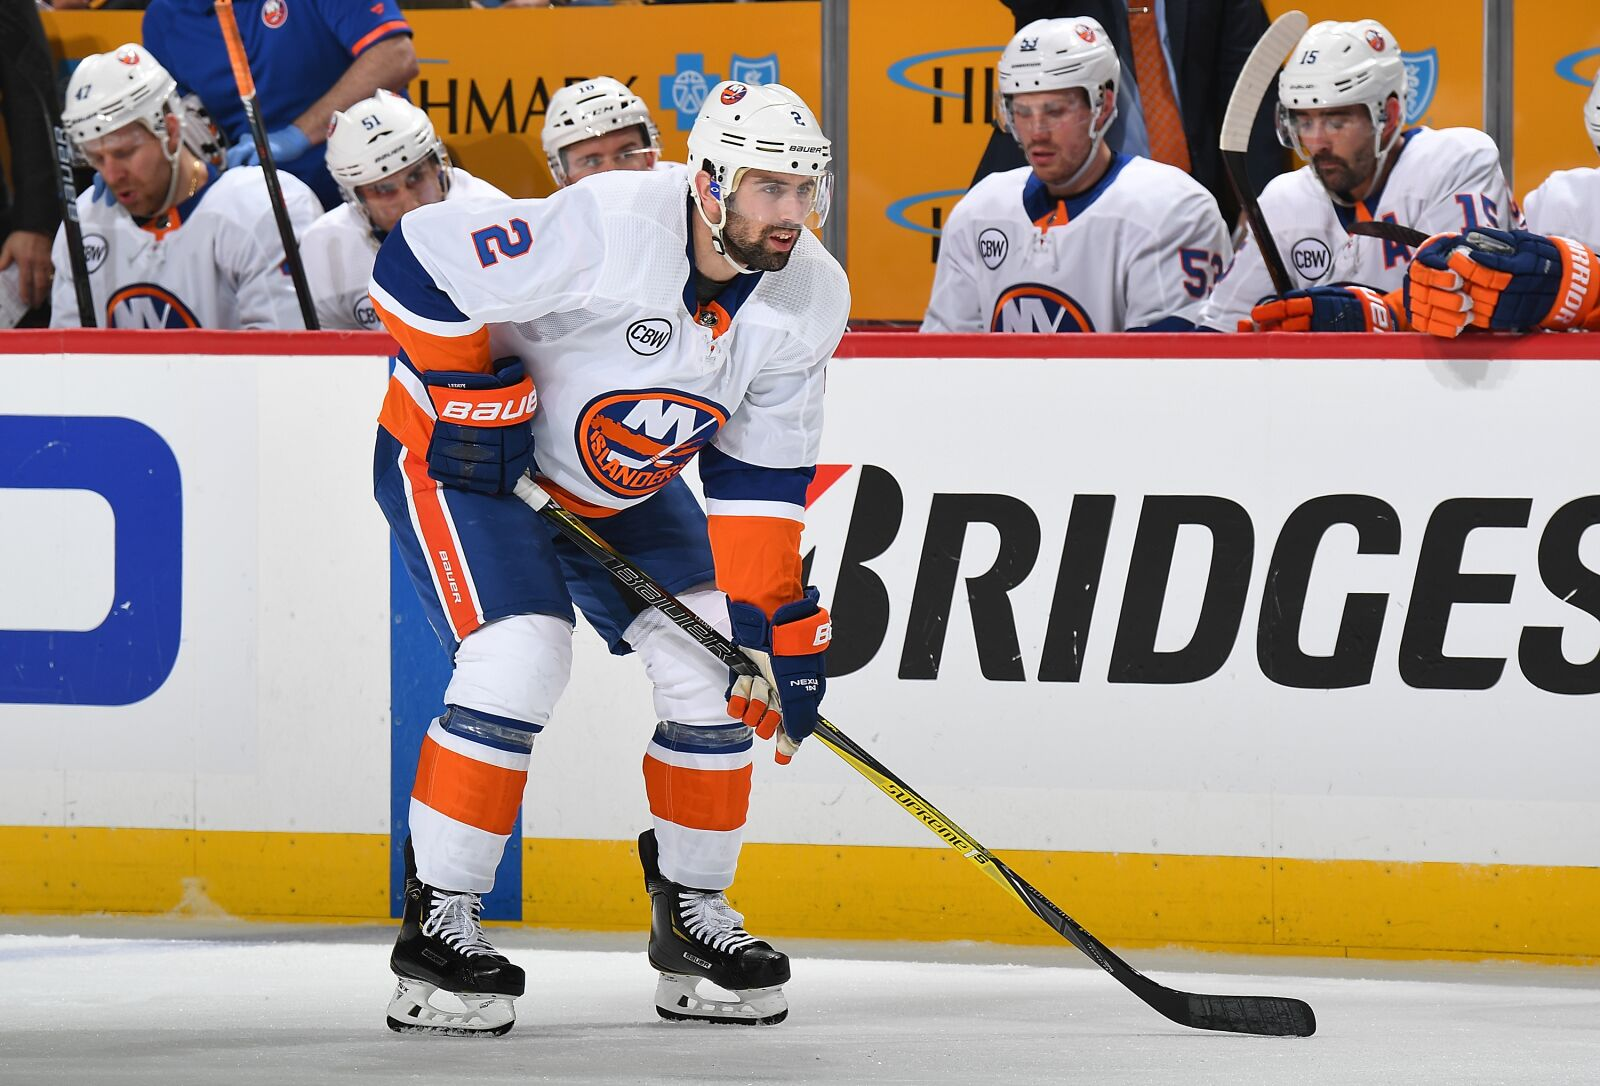 Montreal Canadiens: Nick Leddy Is Worth The Risk